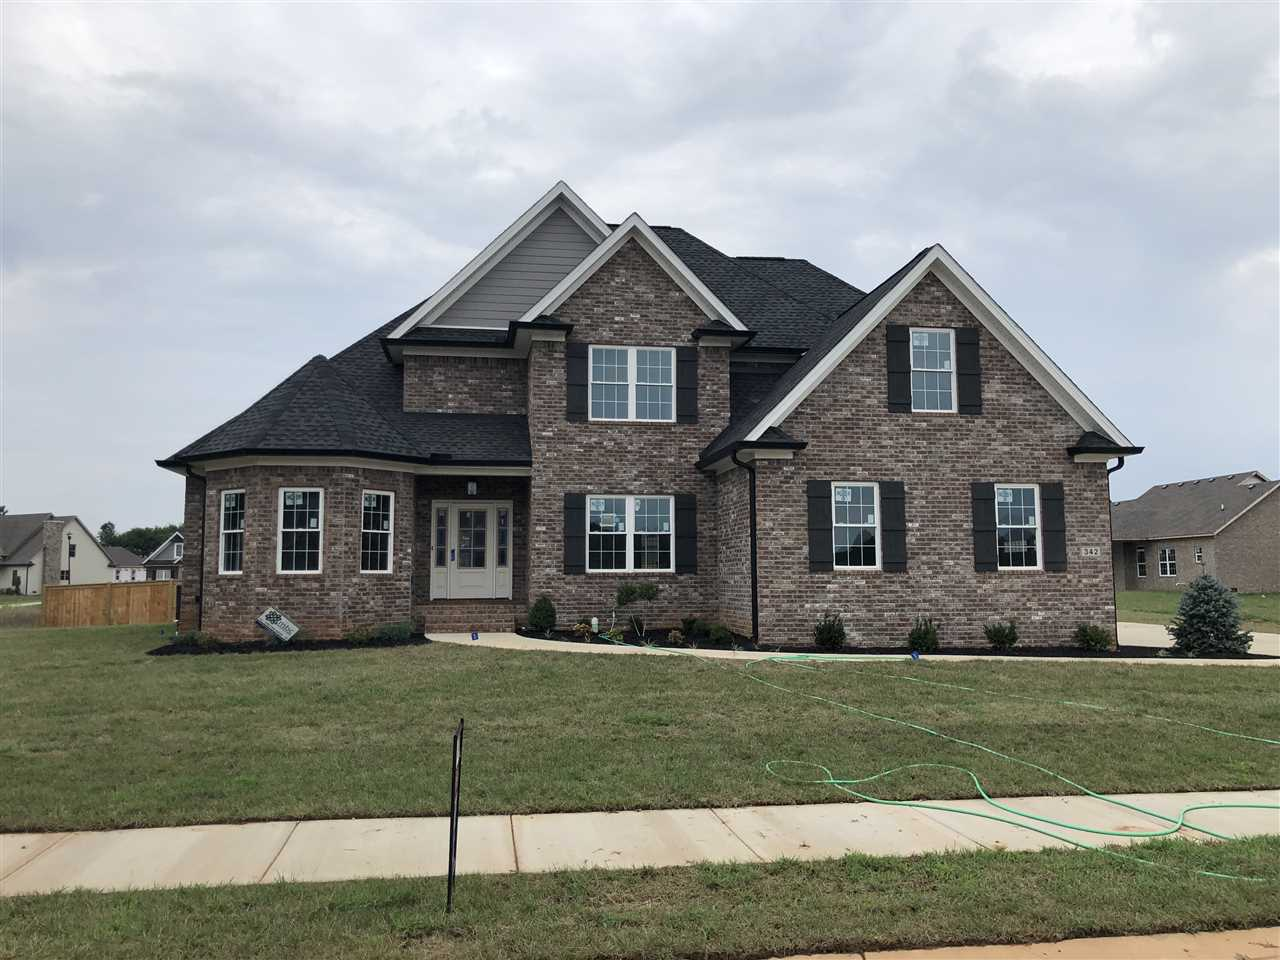 342 Nash Stone Court Lot 28 - Drakes Ridge Subdivision